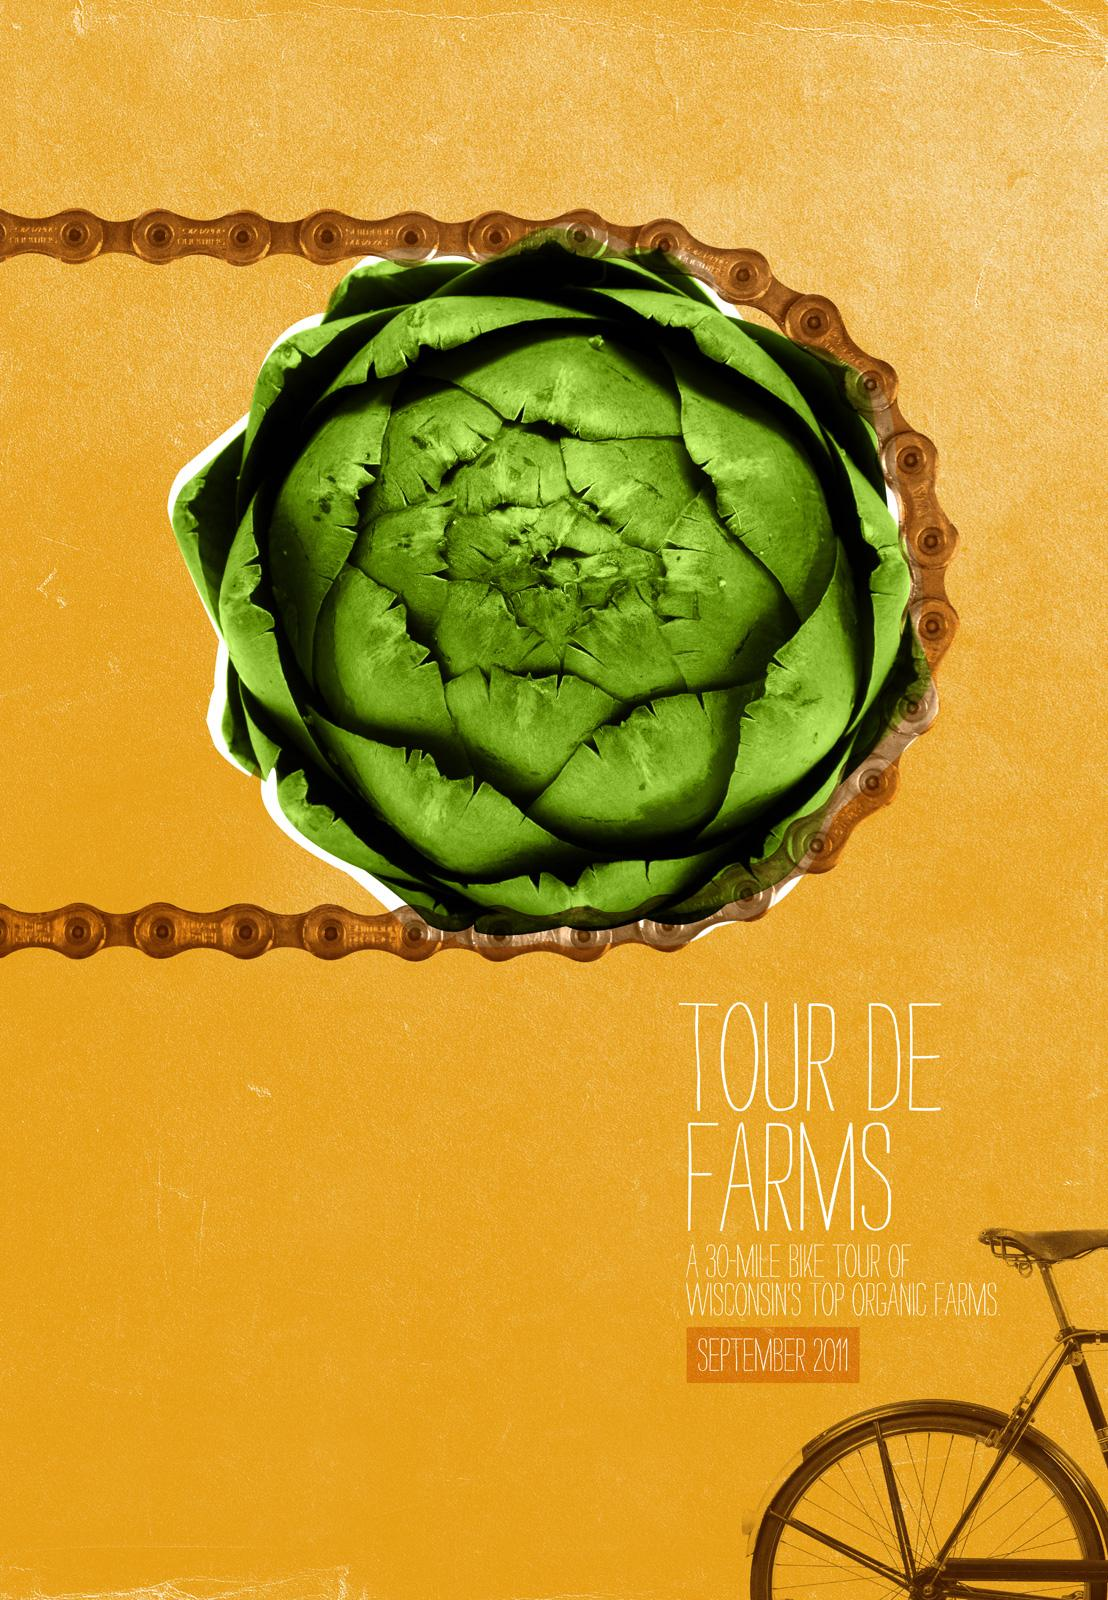 Braise Local Food Print Ad -  Tour de Farms, Artichoke chain